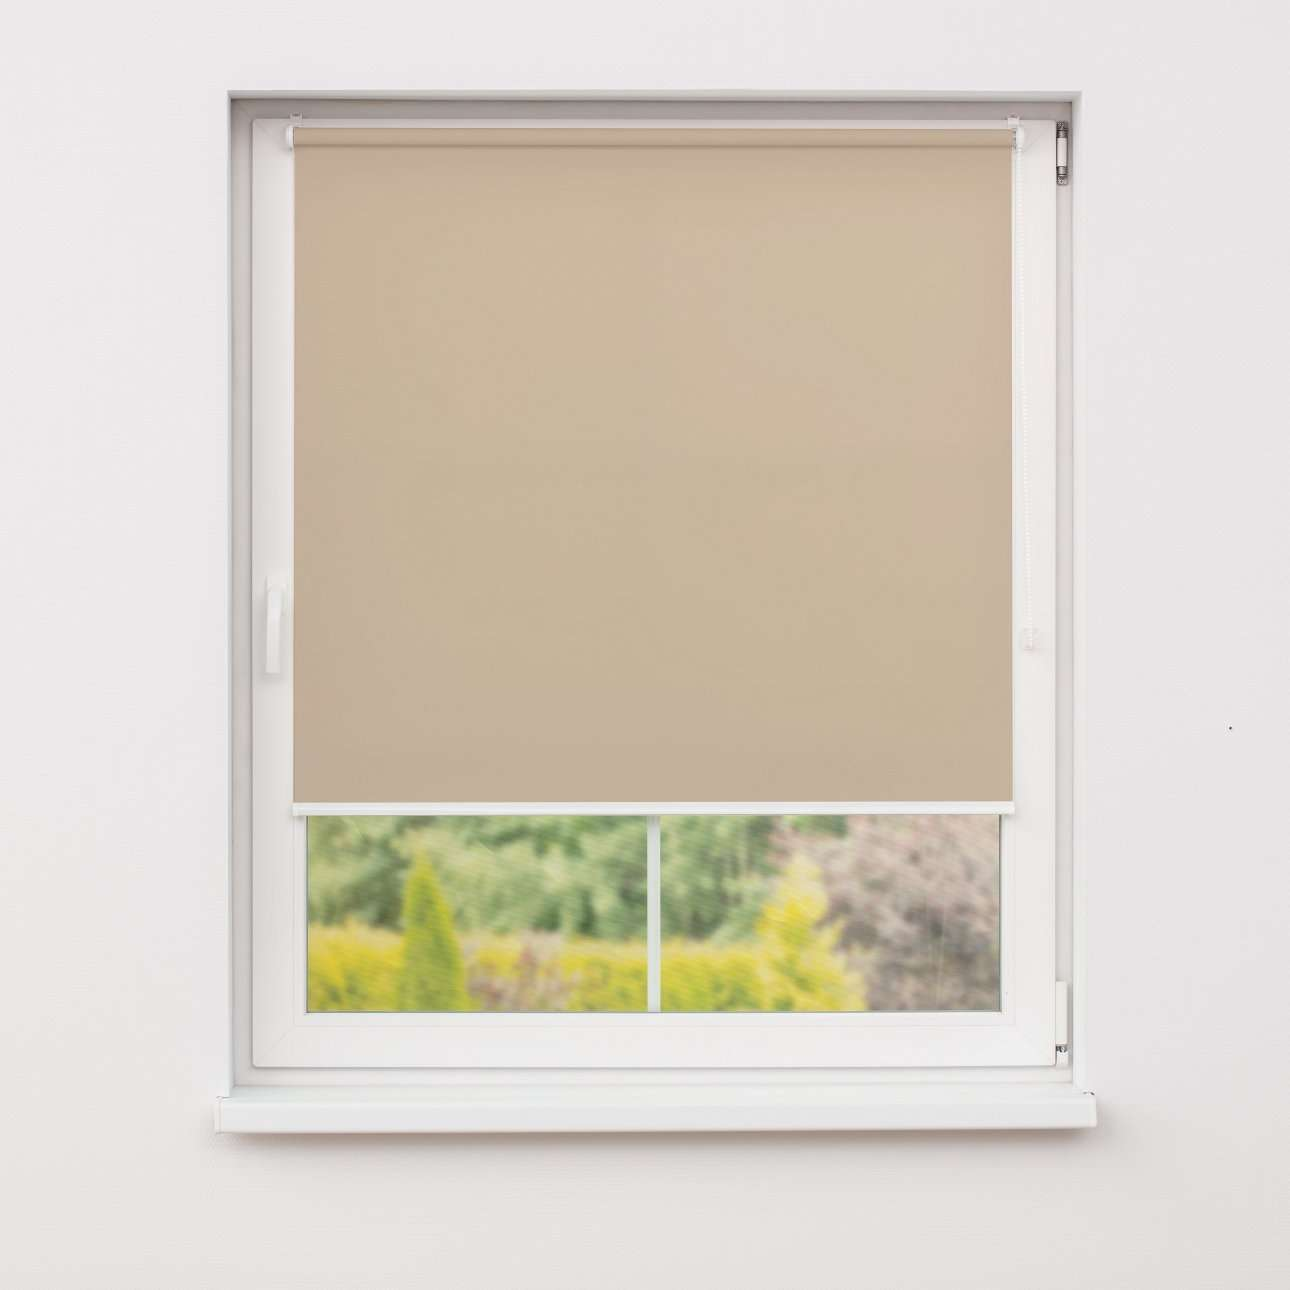 Mini roller blind (compact design for fitting inside window recess) in collection Roller blind transparent, fabric: 4999